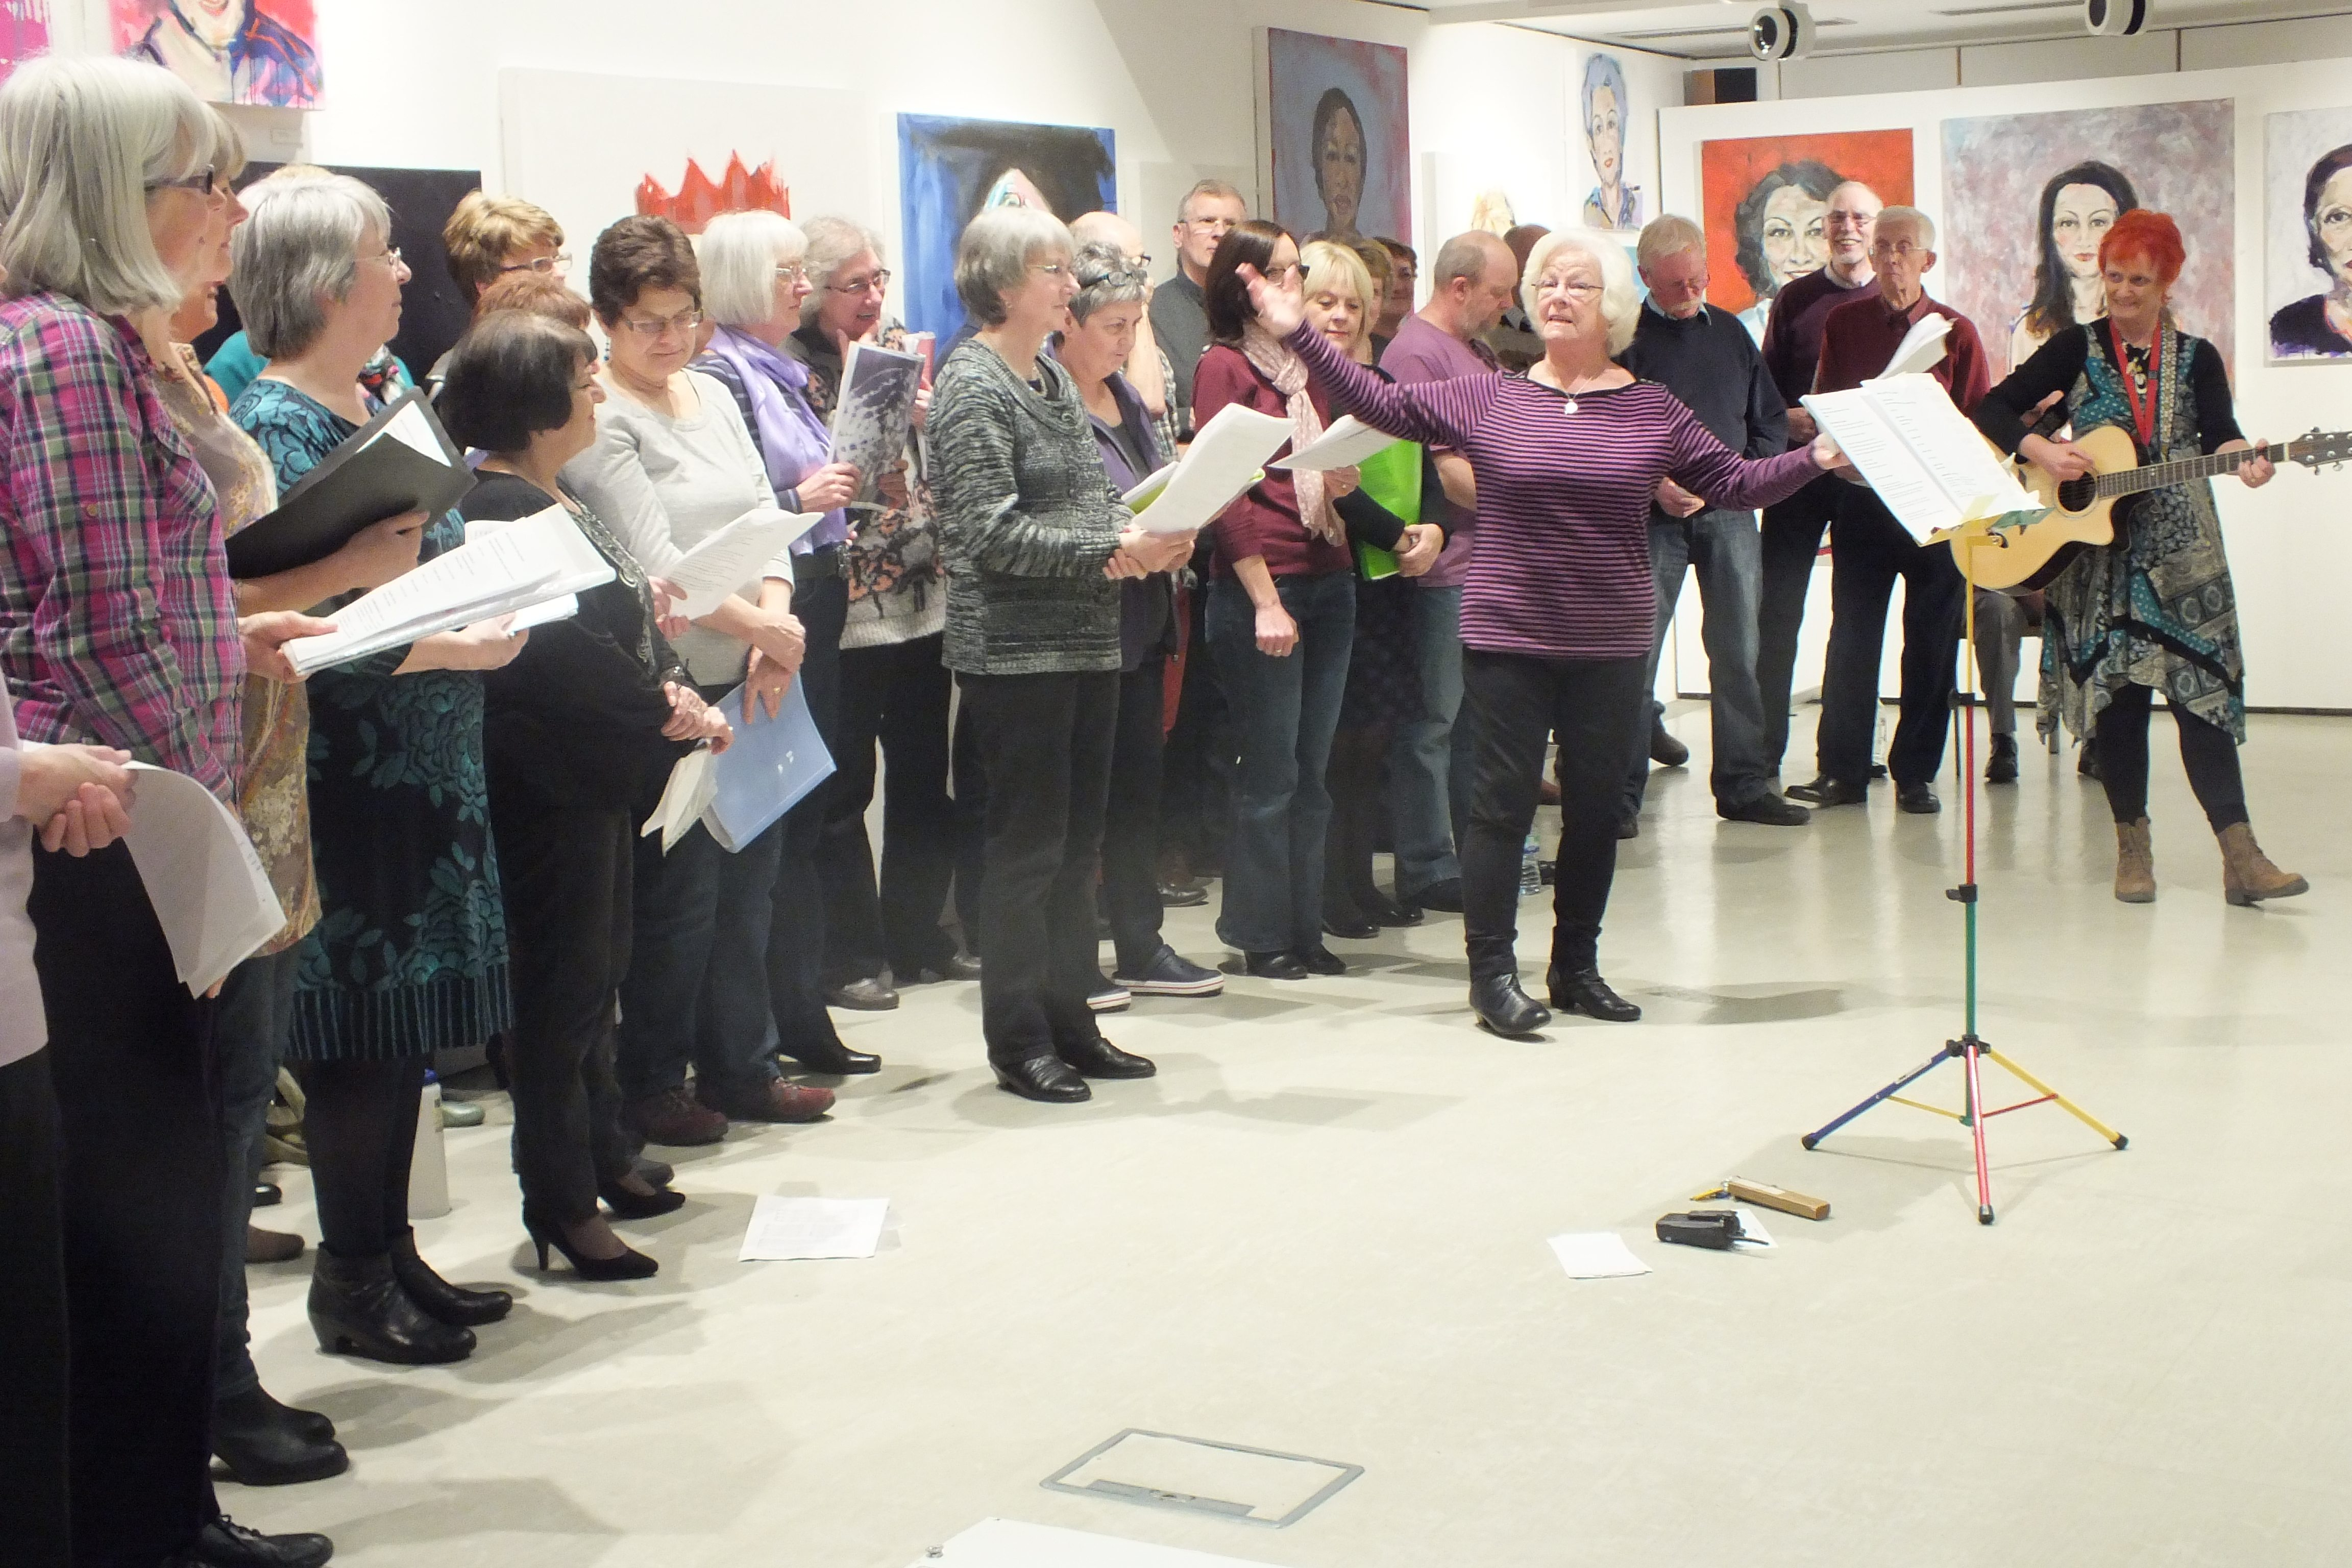 New for 2017: A singing group for people living with dementia and their family and friends